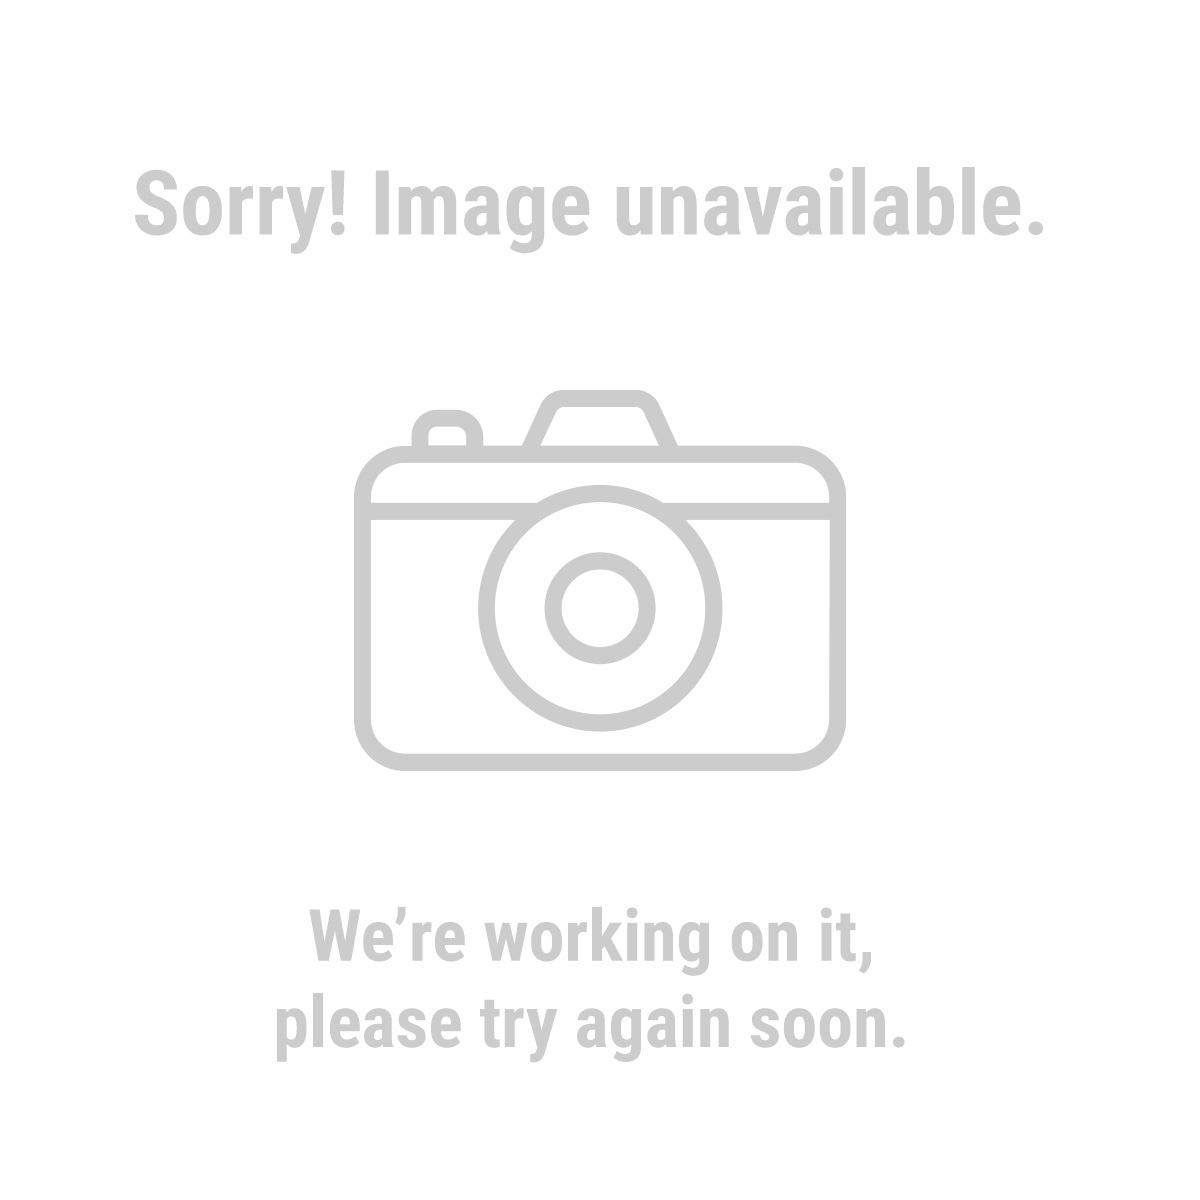 Central Hydraulics 65330 20 Ton Air/Hydraulic Shop Press with Oil Filter Crusher